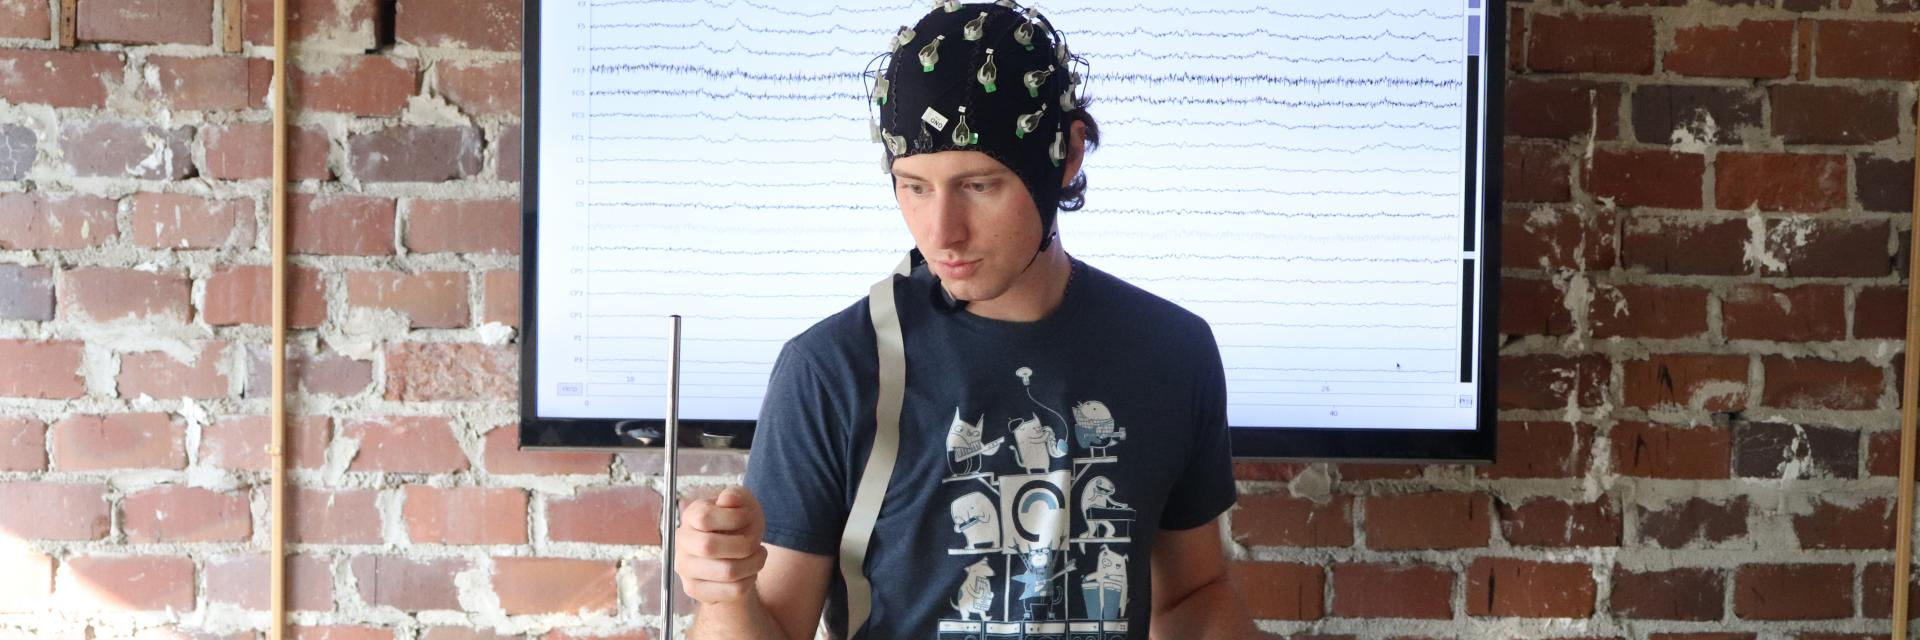 Mike Winters, a Ph.D. student, playing a theramin while wearing a brain scan cap.